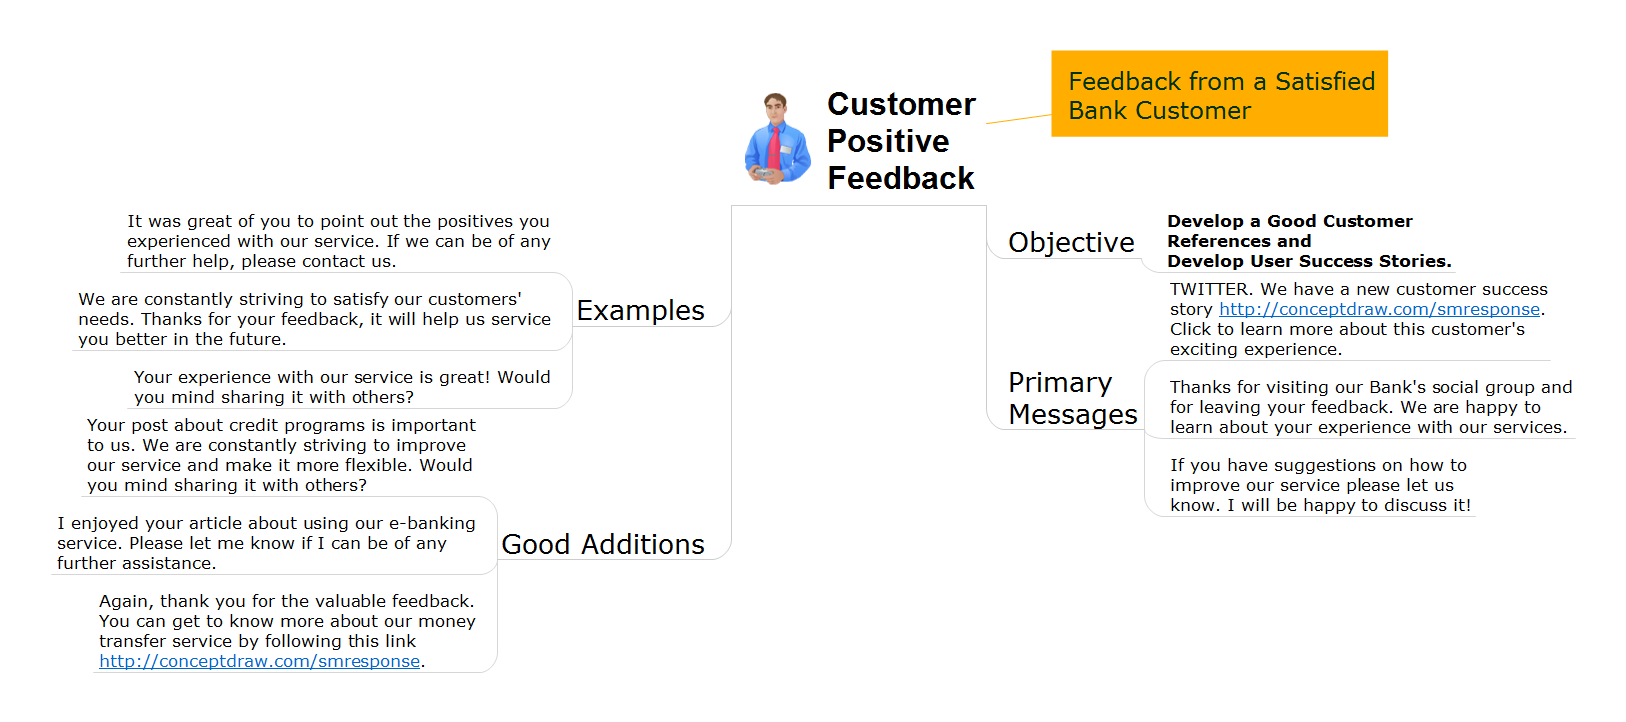 Social media response action mindmap - Bank customer positive feedback